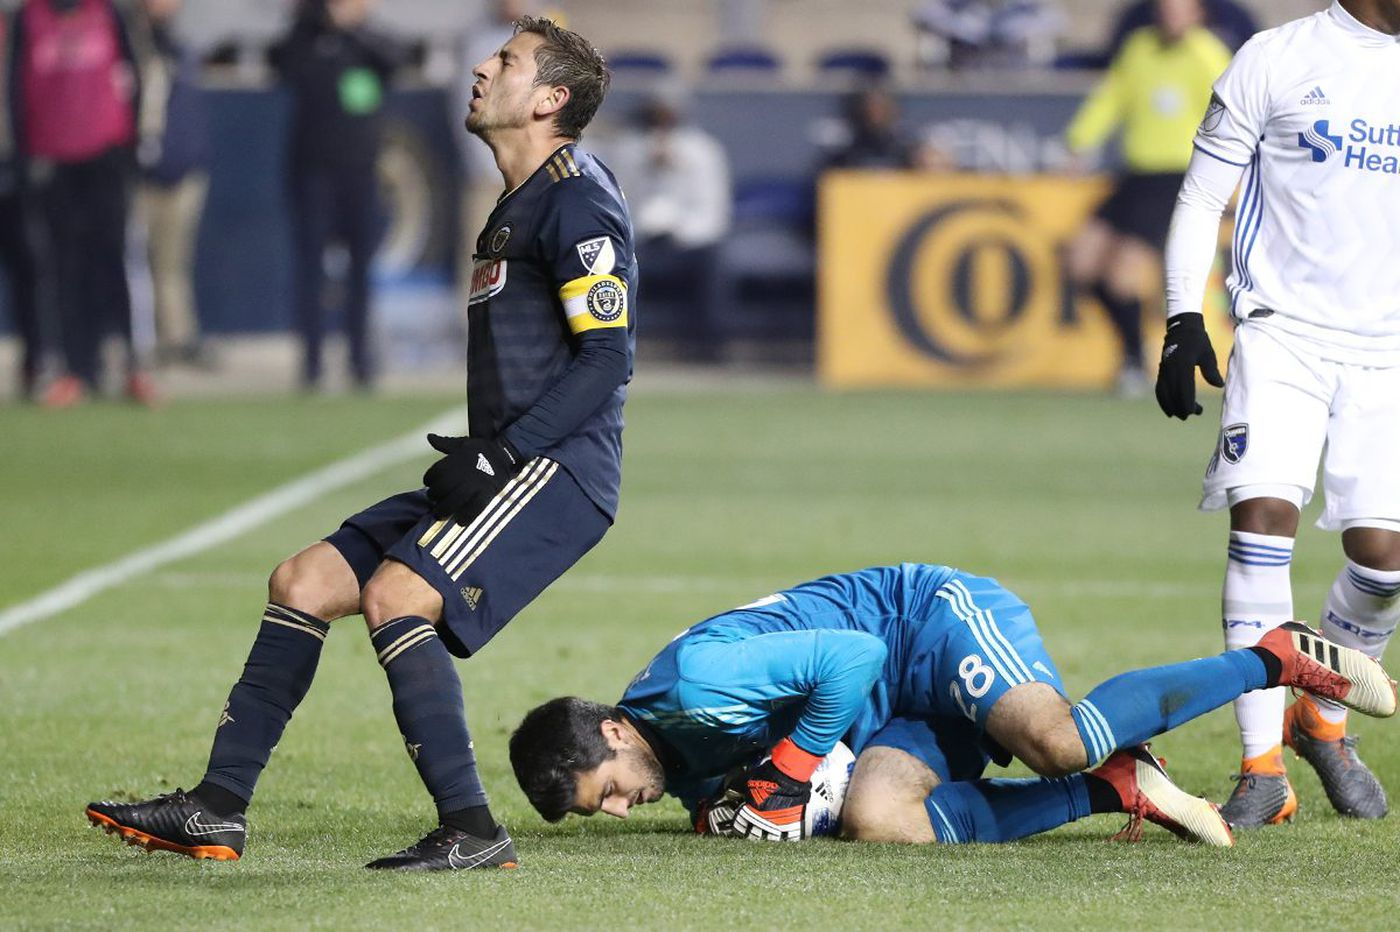 Union record 22 shots but just one goal in 1-1 tie with San Jose Earthquakes